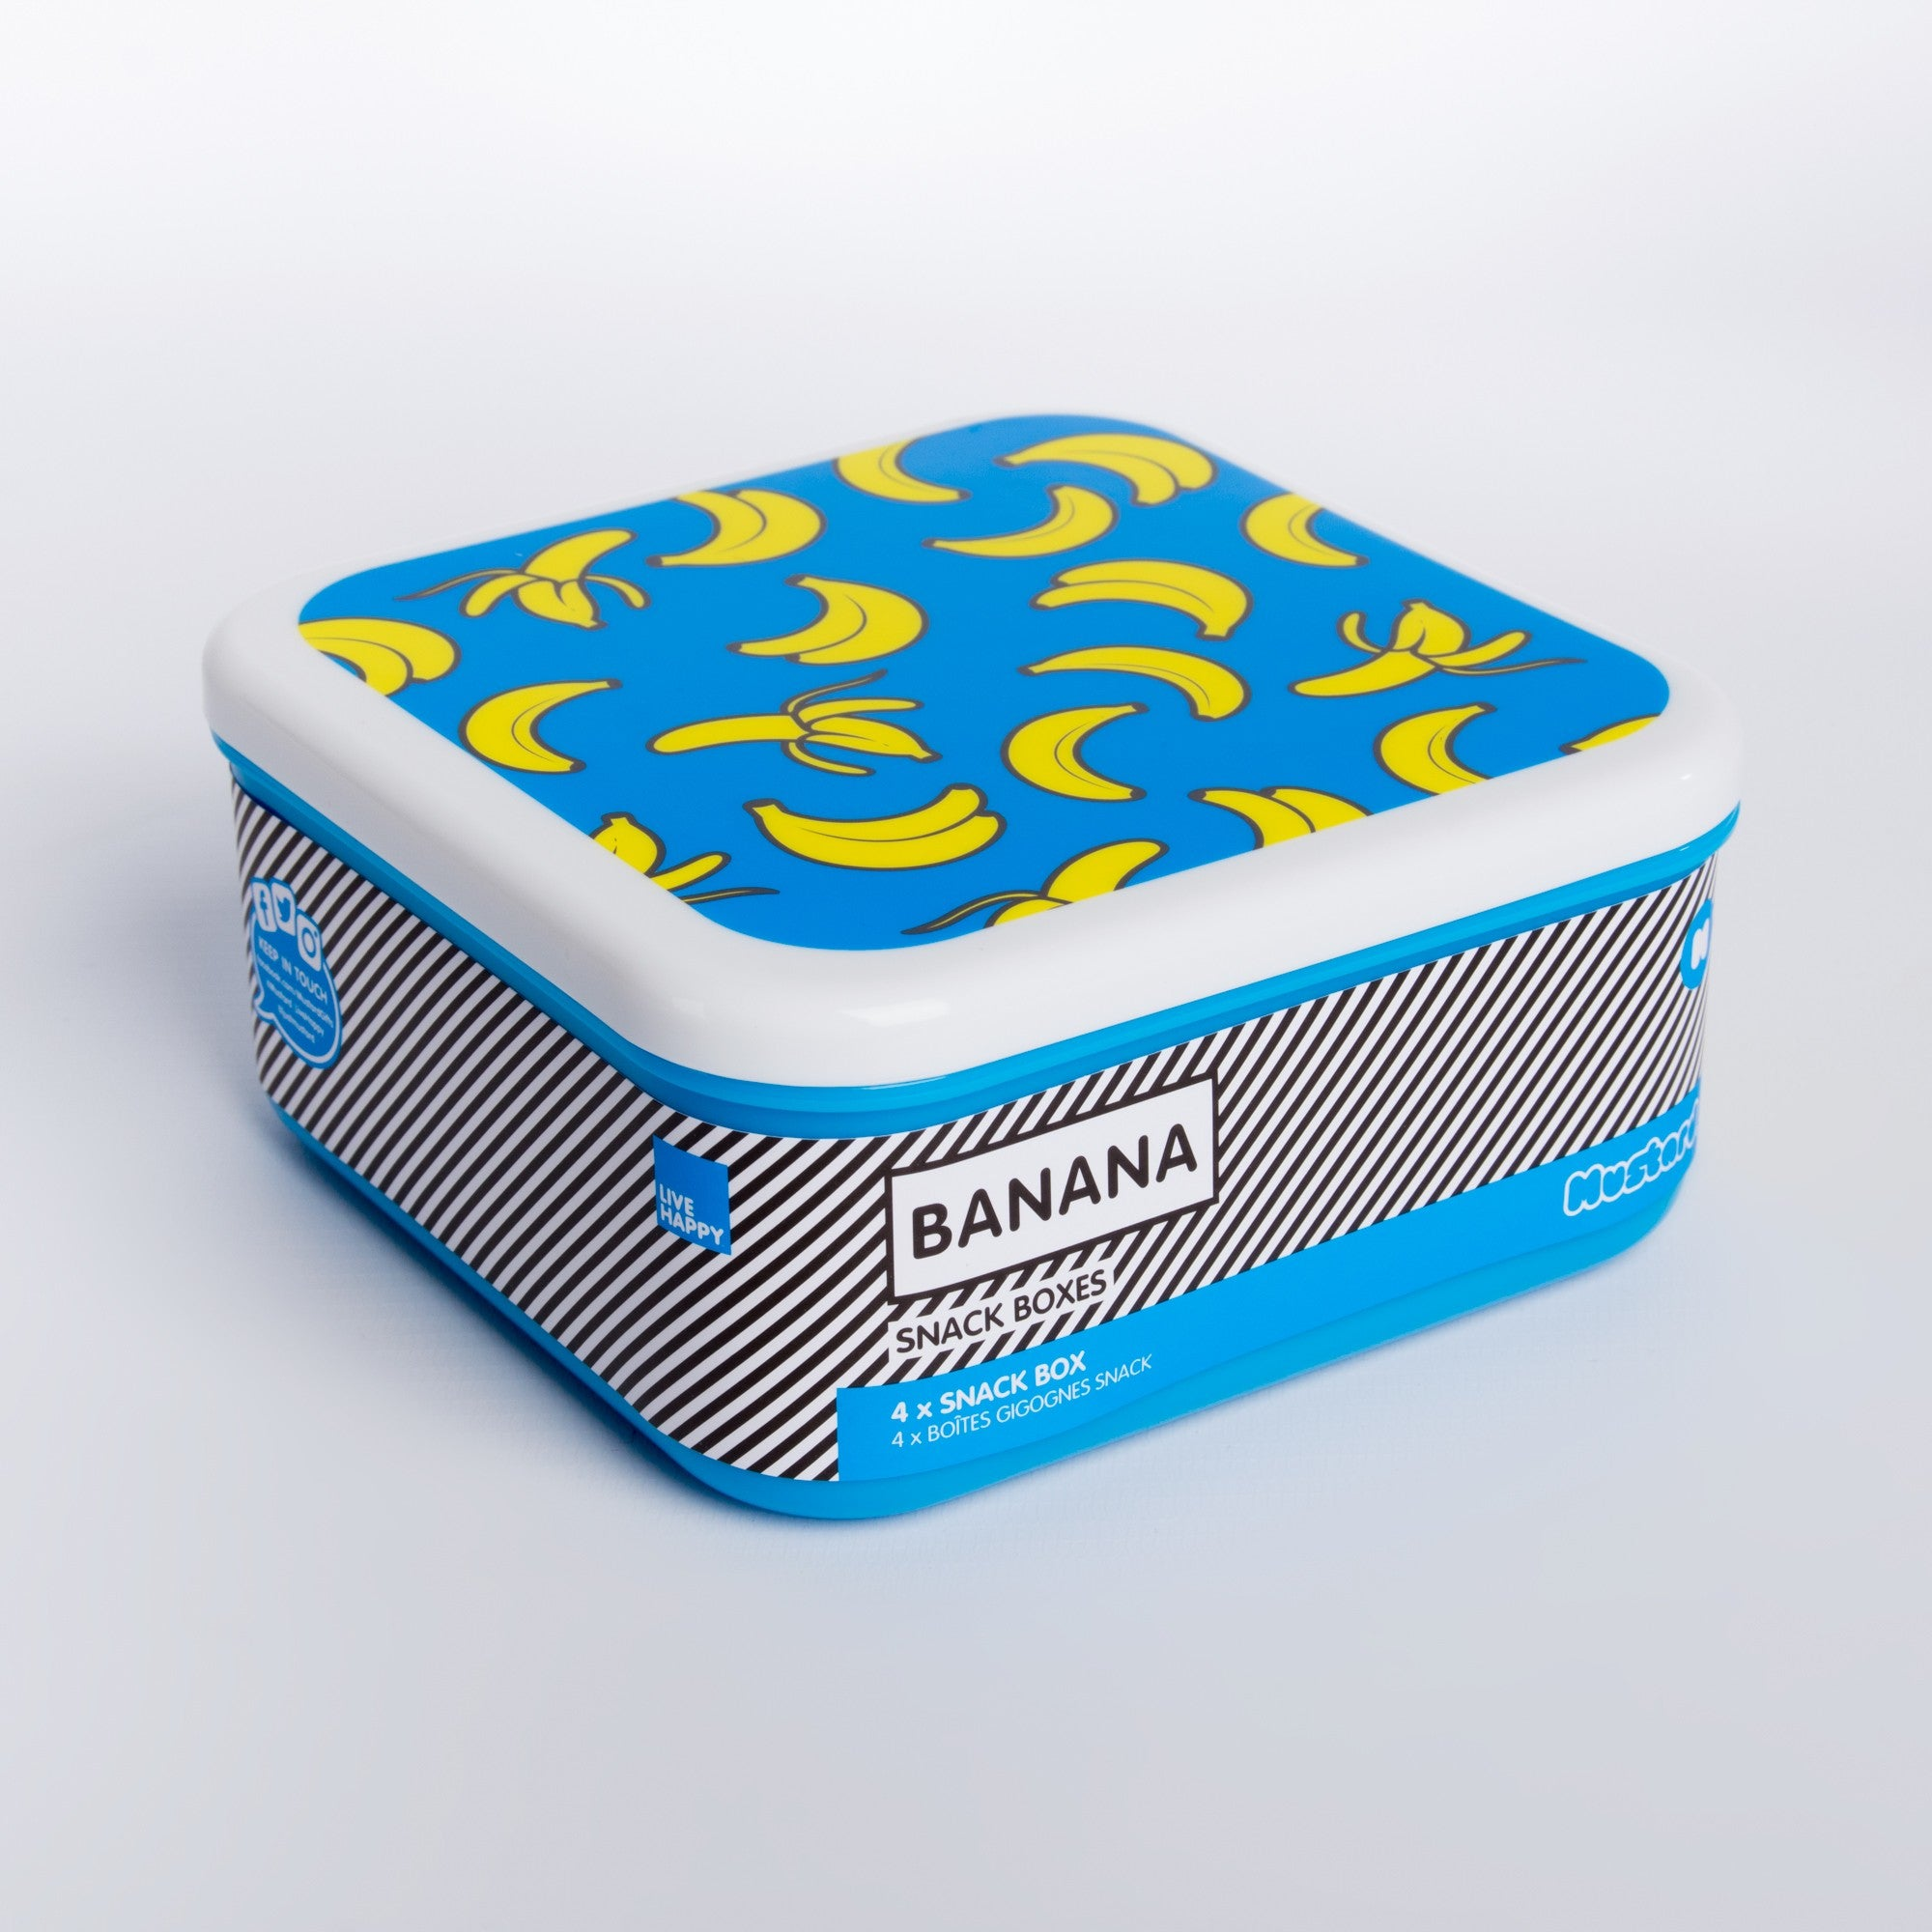 Banana Snack Boxes by Mustard Gifts on OOSTOR.com